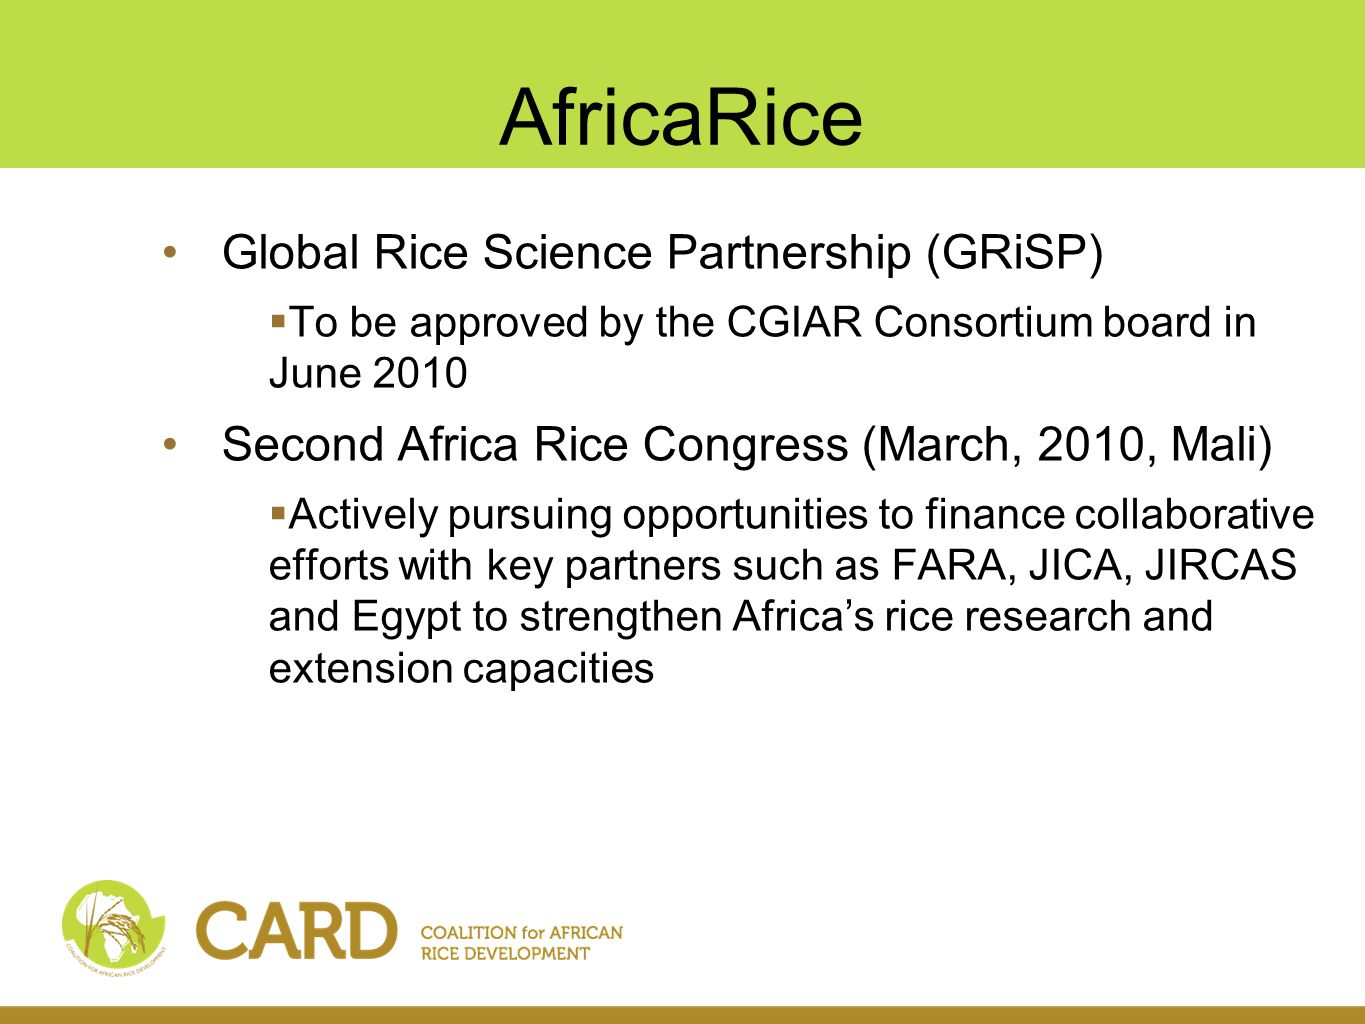 JIRCAS Comprehensive research approach using innovative and adaptive technologies Ghana: Development of sustainable low-input rice cultivation system in flood plain in Africa Benin: breeding program for drought / submergence tolerant rice varieties (with AfricaRice) Study programs in Ghana and Ethiopia  Development of improved infrastructure and technology for rice production